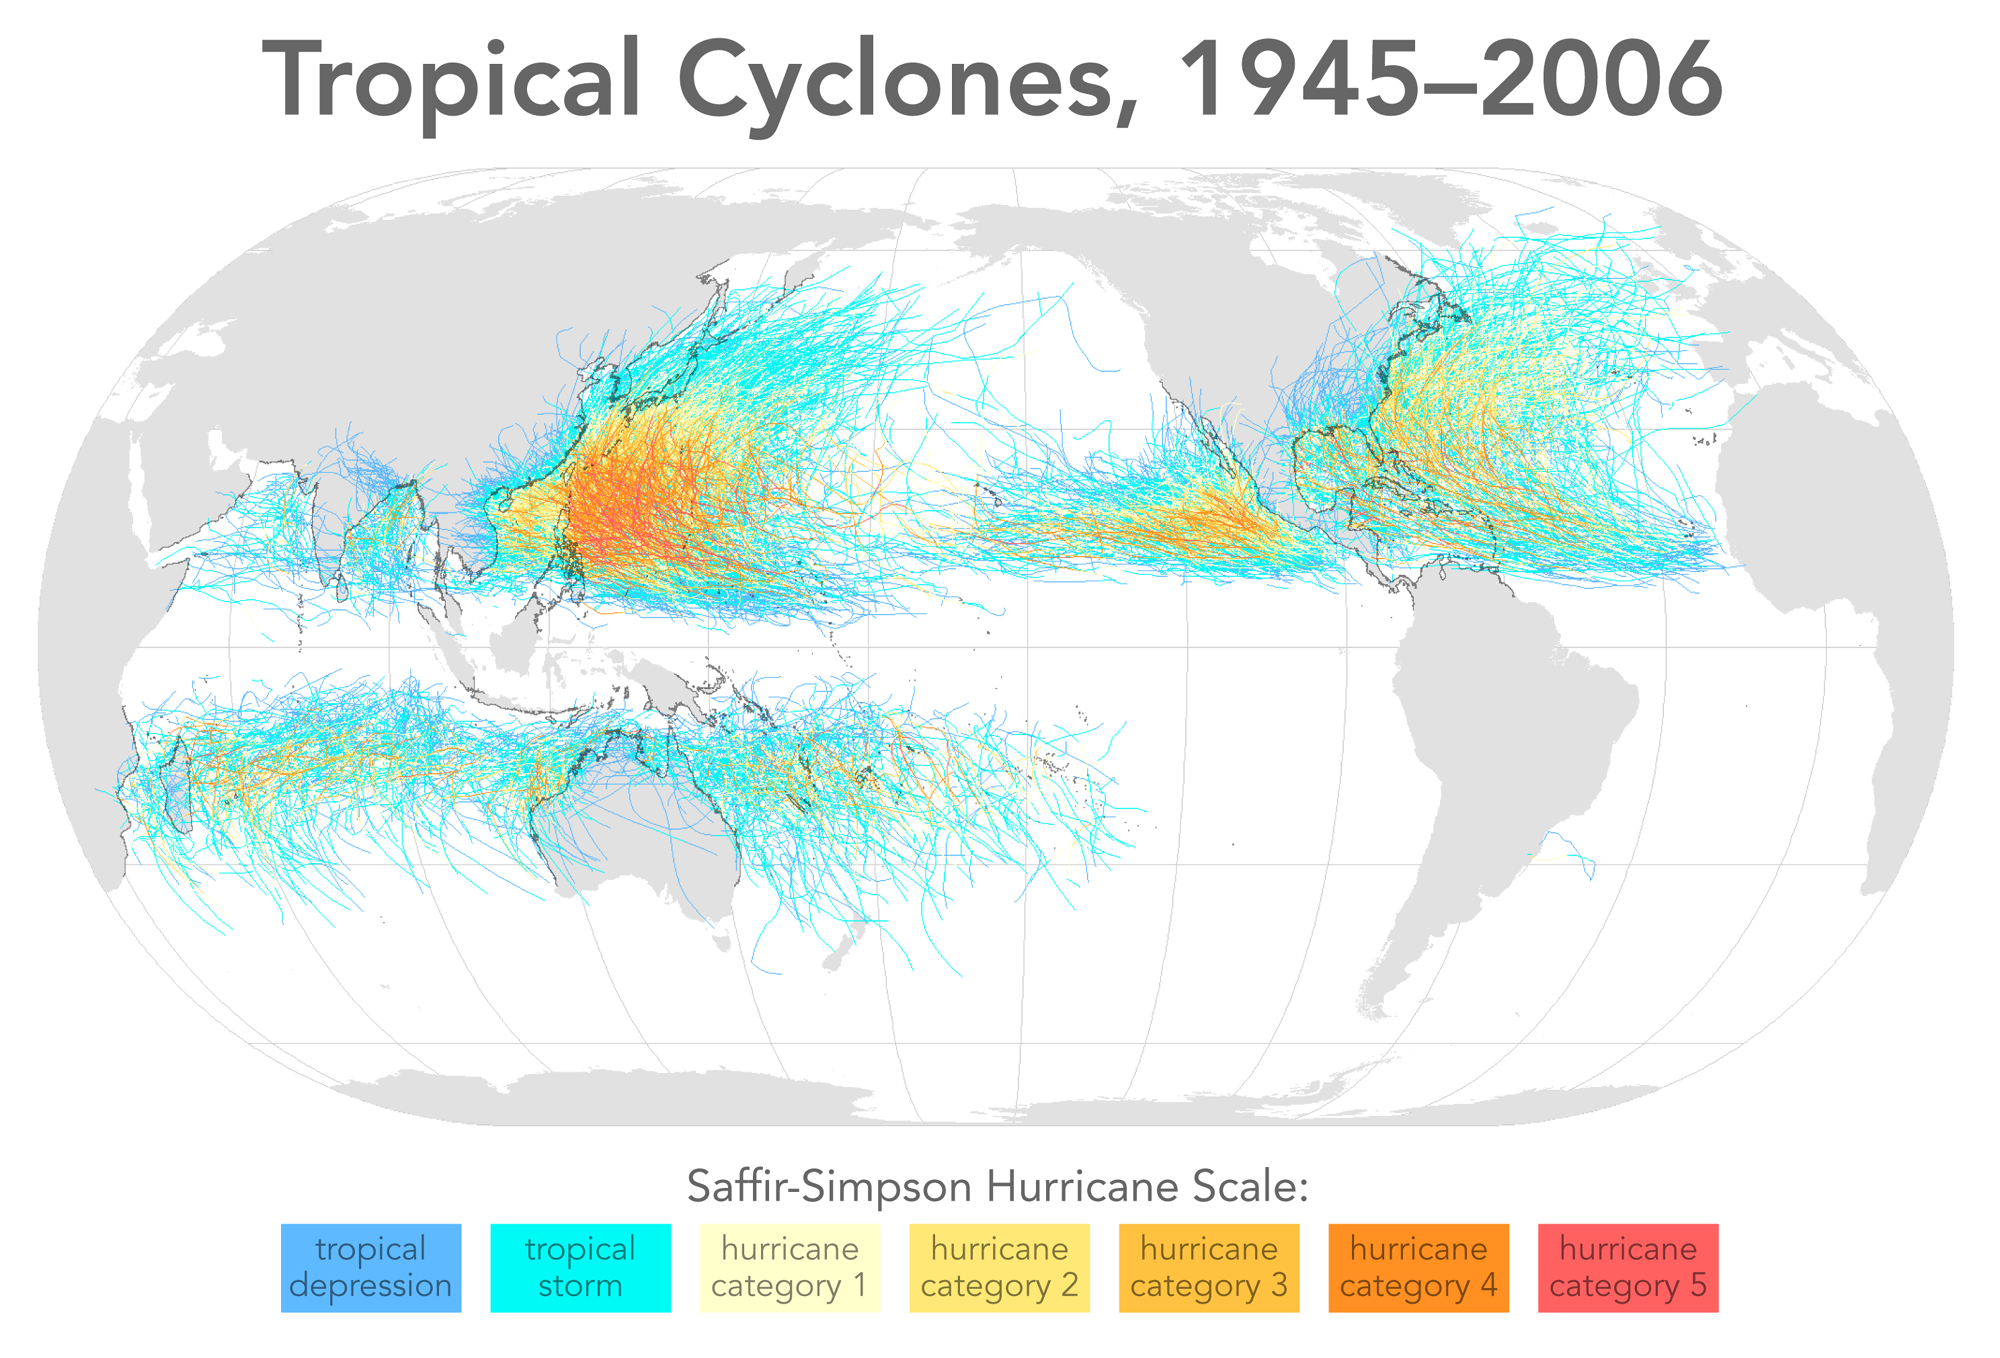 an analysis of the hurricanes cyclones and typhoons in the tropical areas Once a tropical cyclone reaches maximum sustained winds of 74mph (119km/h) or higher, it is then classified as a hurricane, typhoon, or tropical cyclone, depending upon where the storm originates .